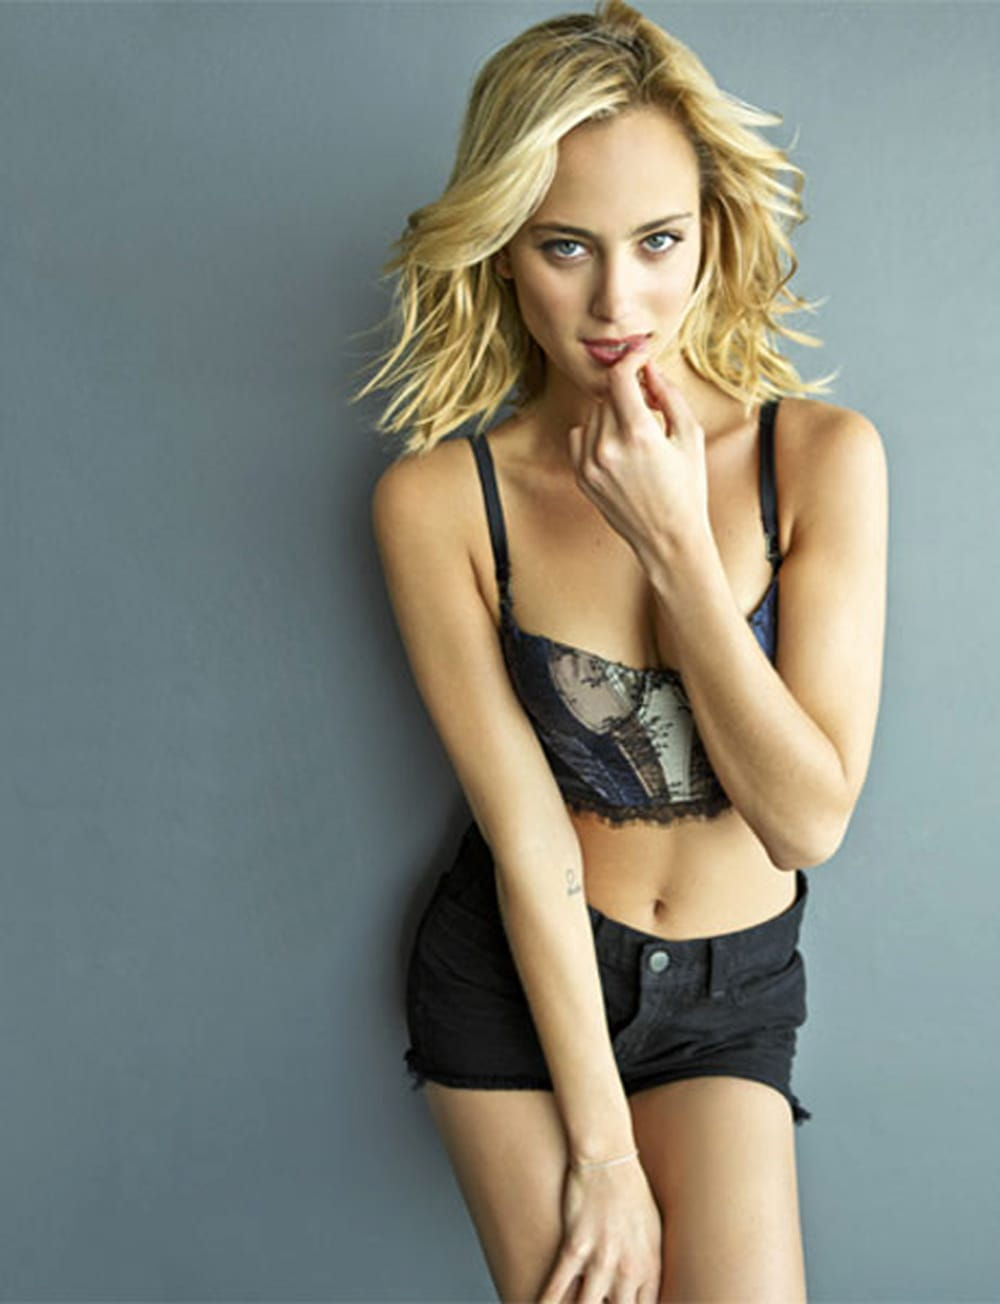 Hot Nora Arnezeder nude (75 photo), Ass, Fappening, Boobs, cleavage 2015